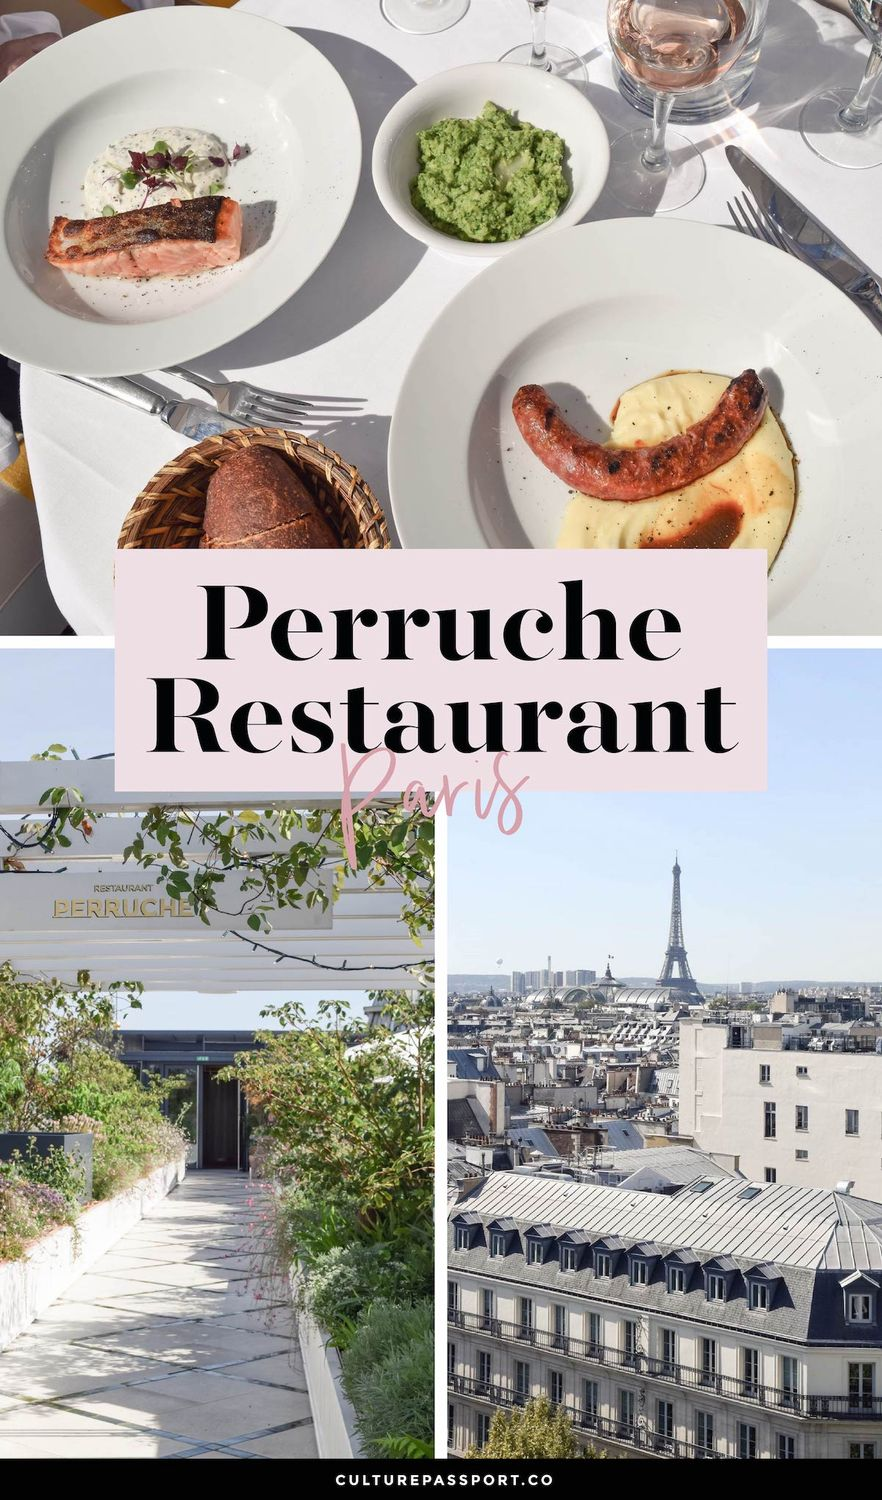 Perruche Restaurant Review, Paris